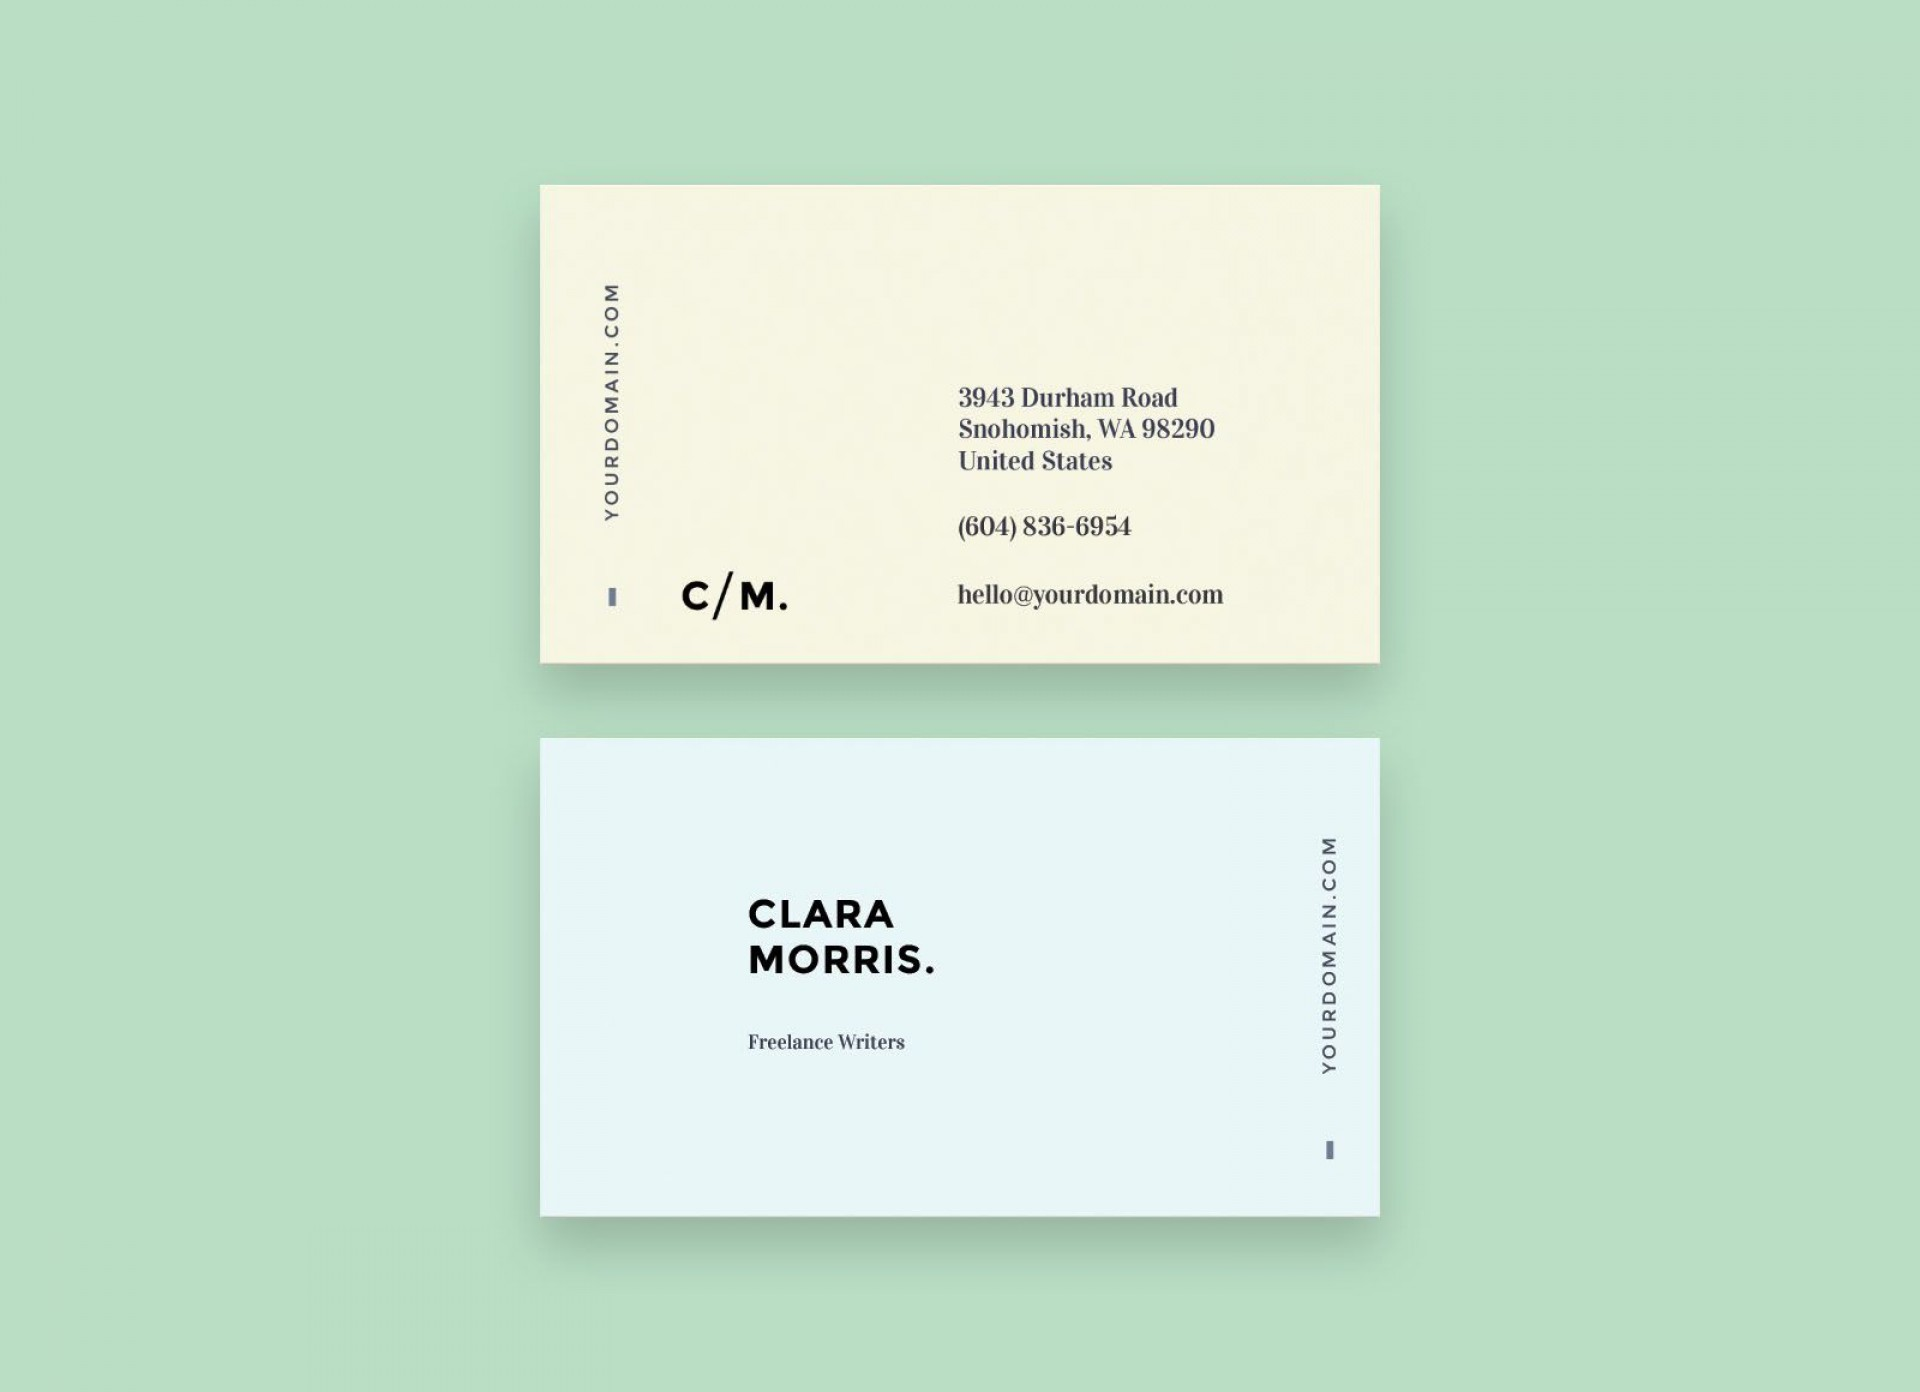 009 Simple Minimal Busines Card Template Free Picture  Easy Download1920